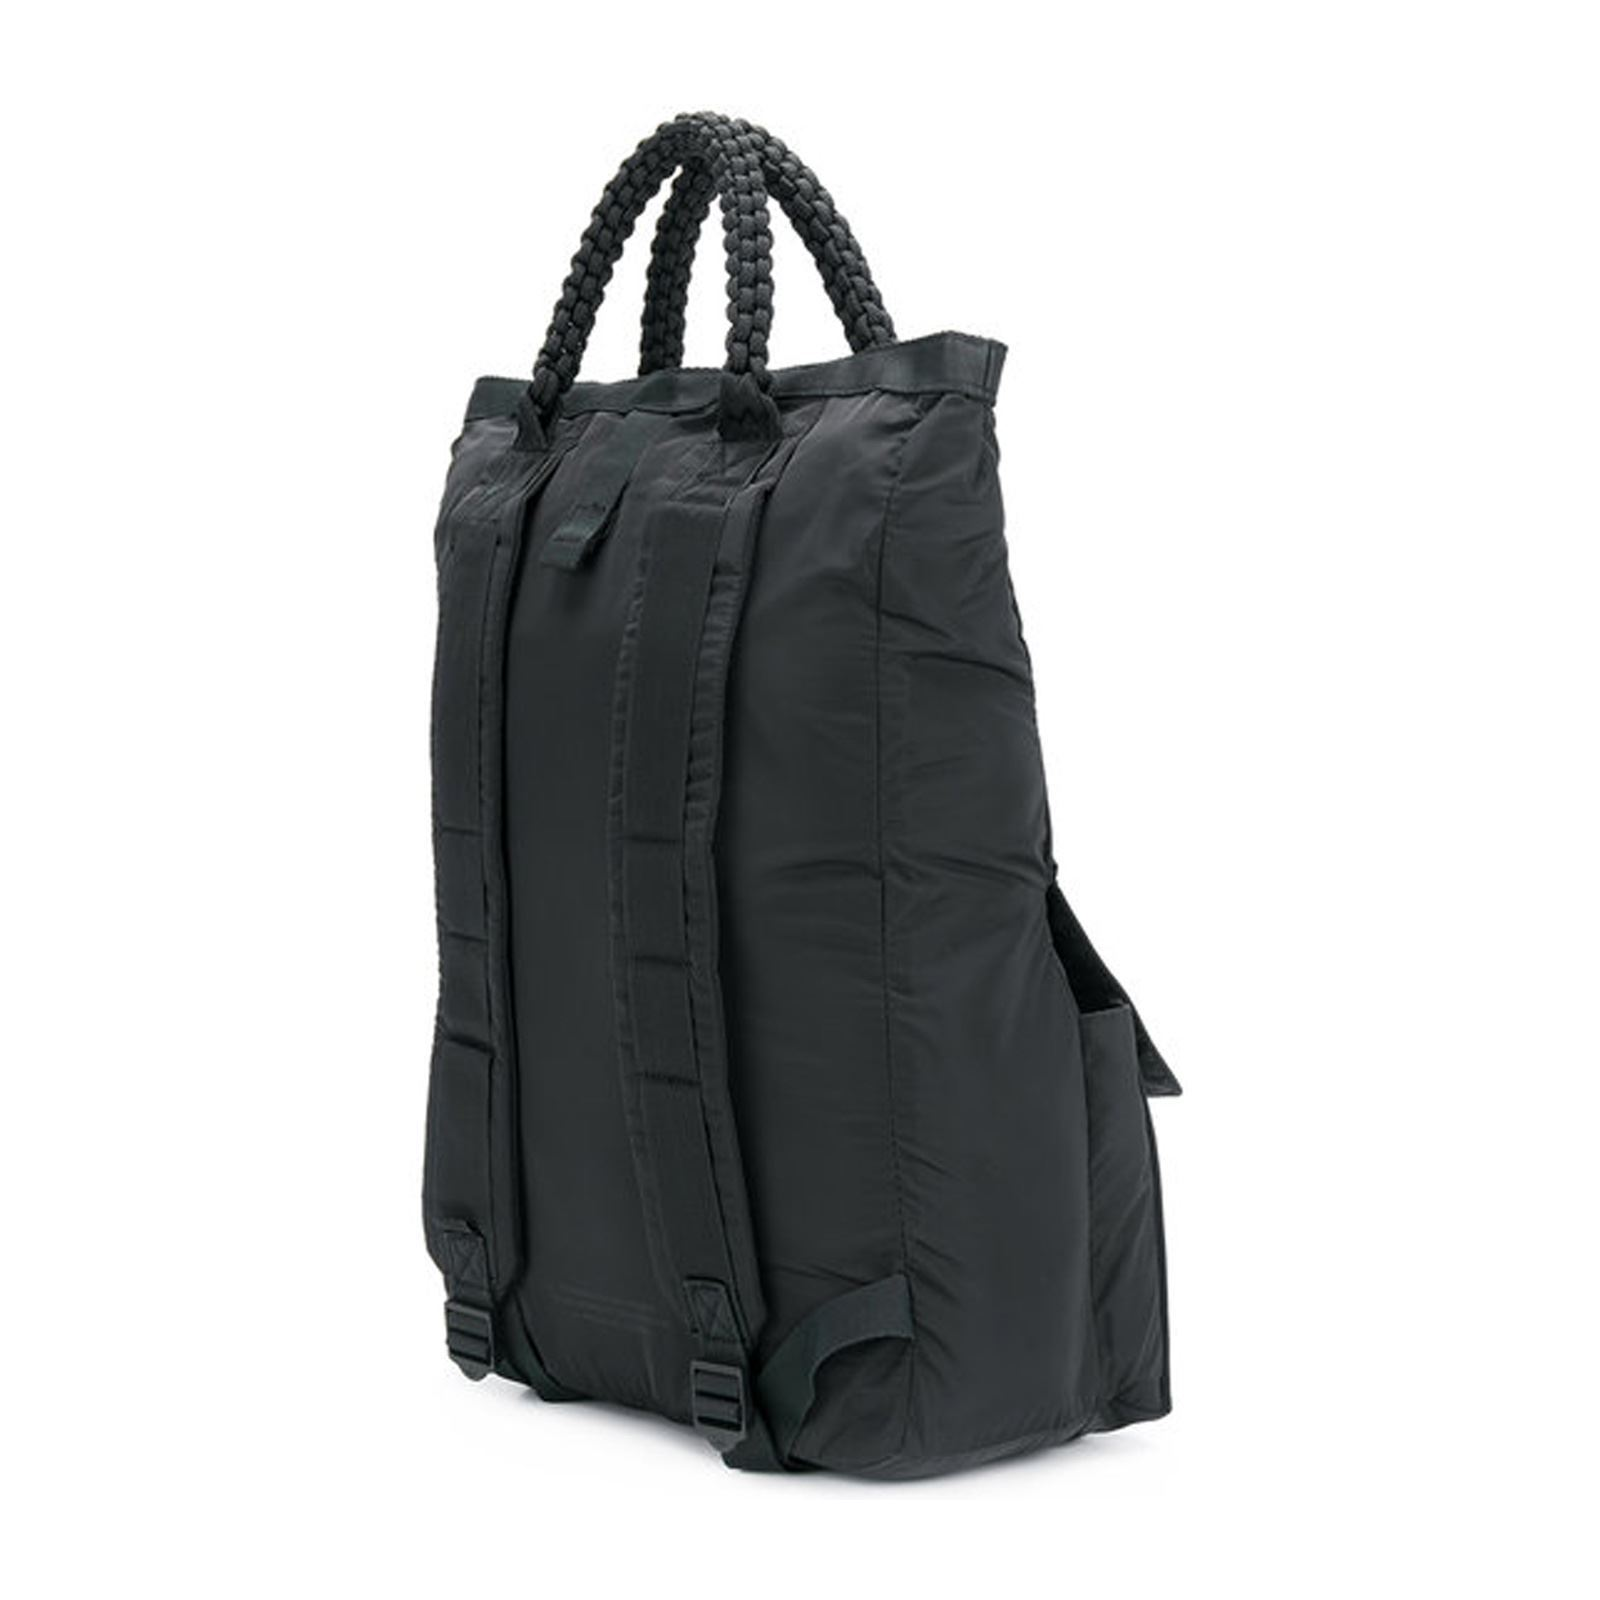 Bp Noir À Adidas Roll Originals Dos Top Sac Brandalley Zzx5q1Bw